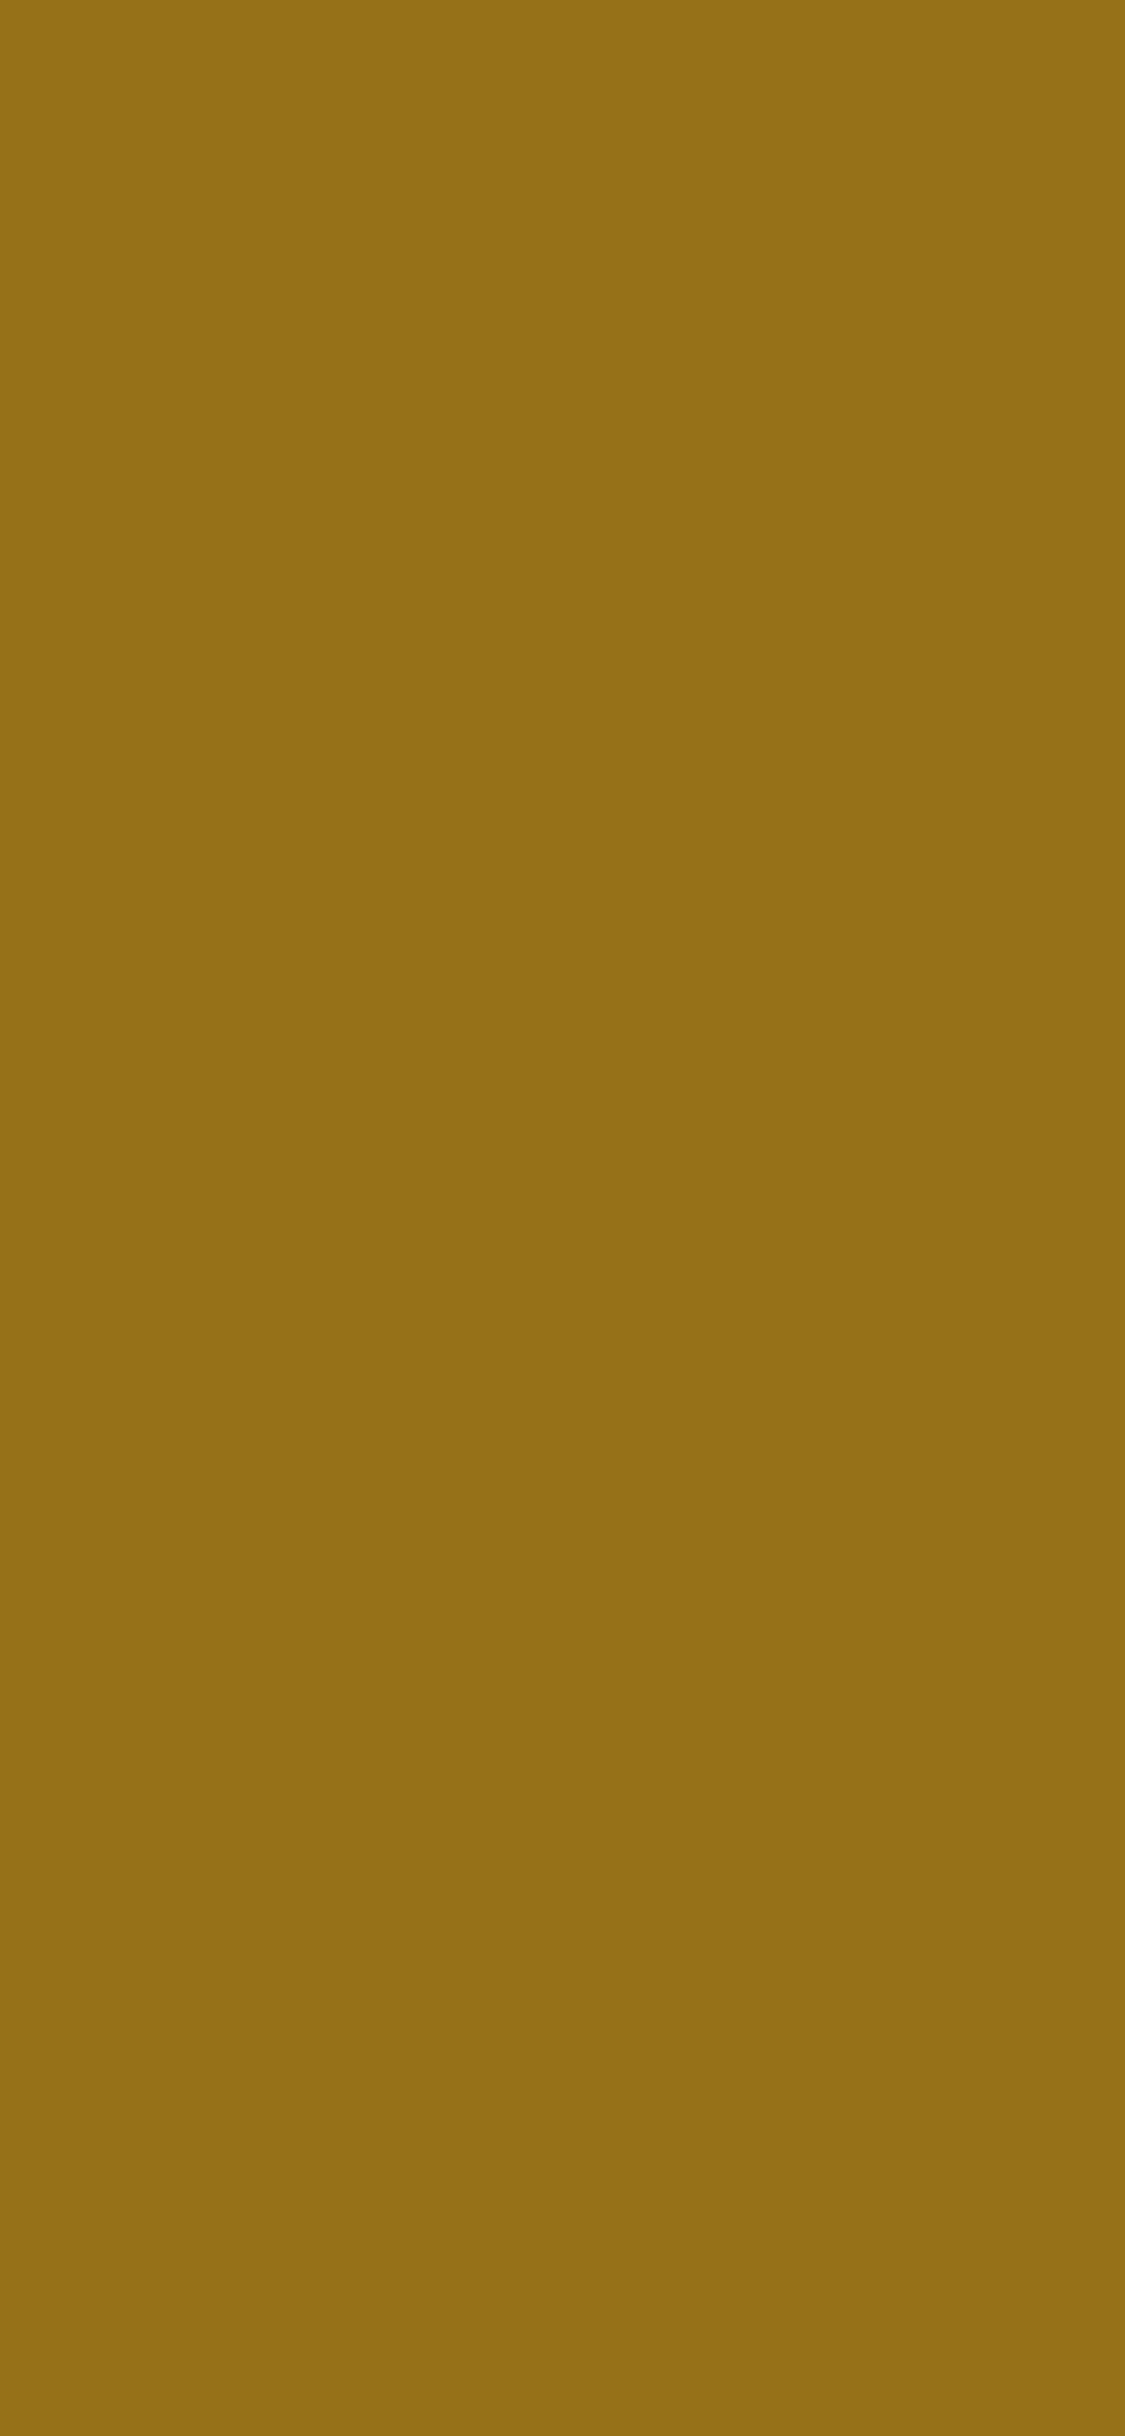 1125x2436 Drab Solid Color Background